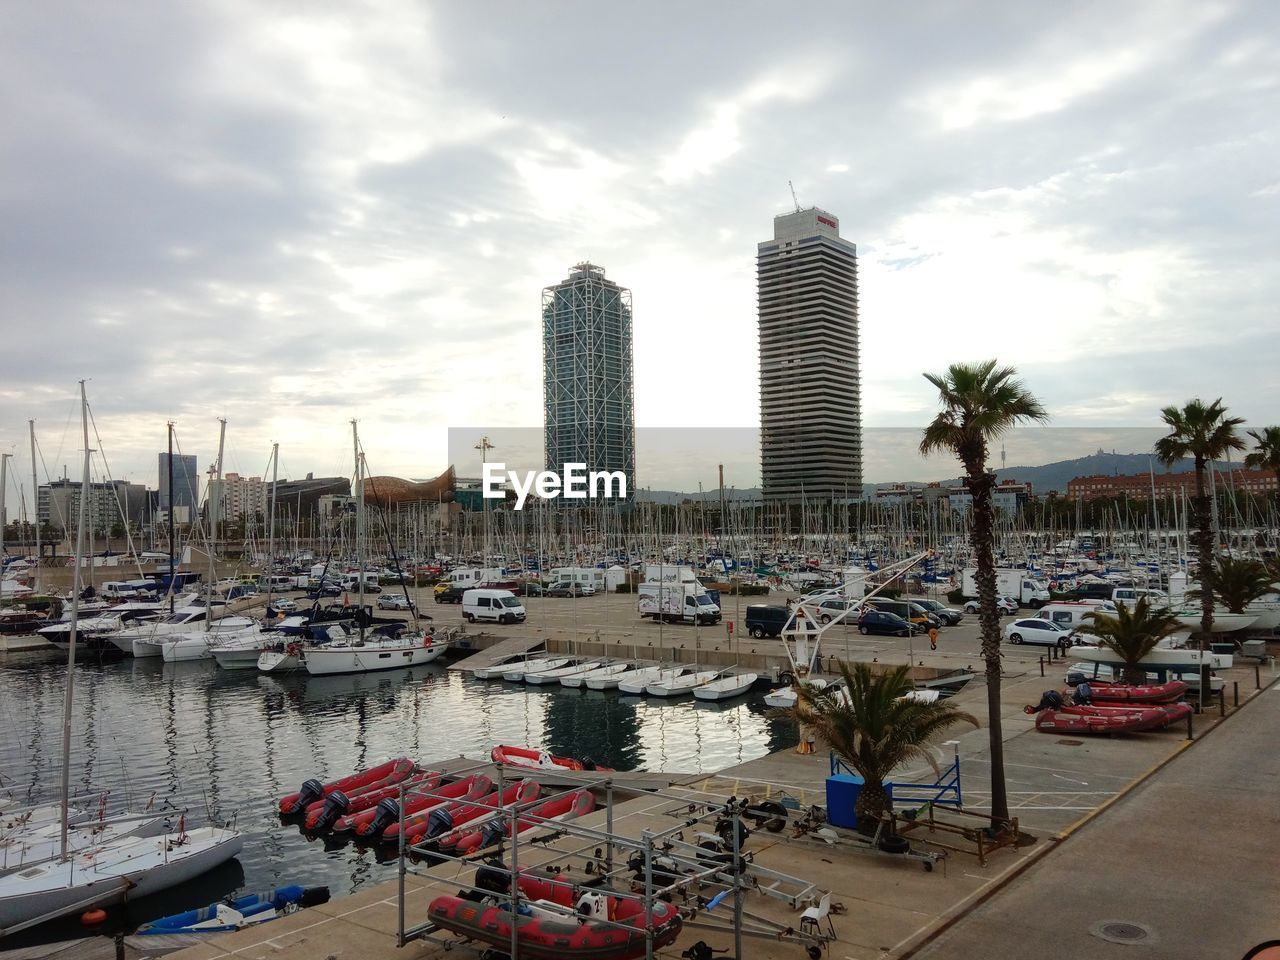 water, sky, architecture, cloud - sky, building exterior, transportation, built structure, nautical vessel, mode of transportation, city, harbor, building, nature, moored, tropical climate, palm tree, day, tree, office building exterior, skyscraper, outdoors, no people, modern, sailboat, marina, yacht, cityscape, port